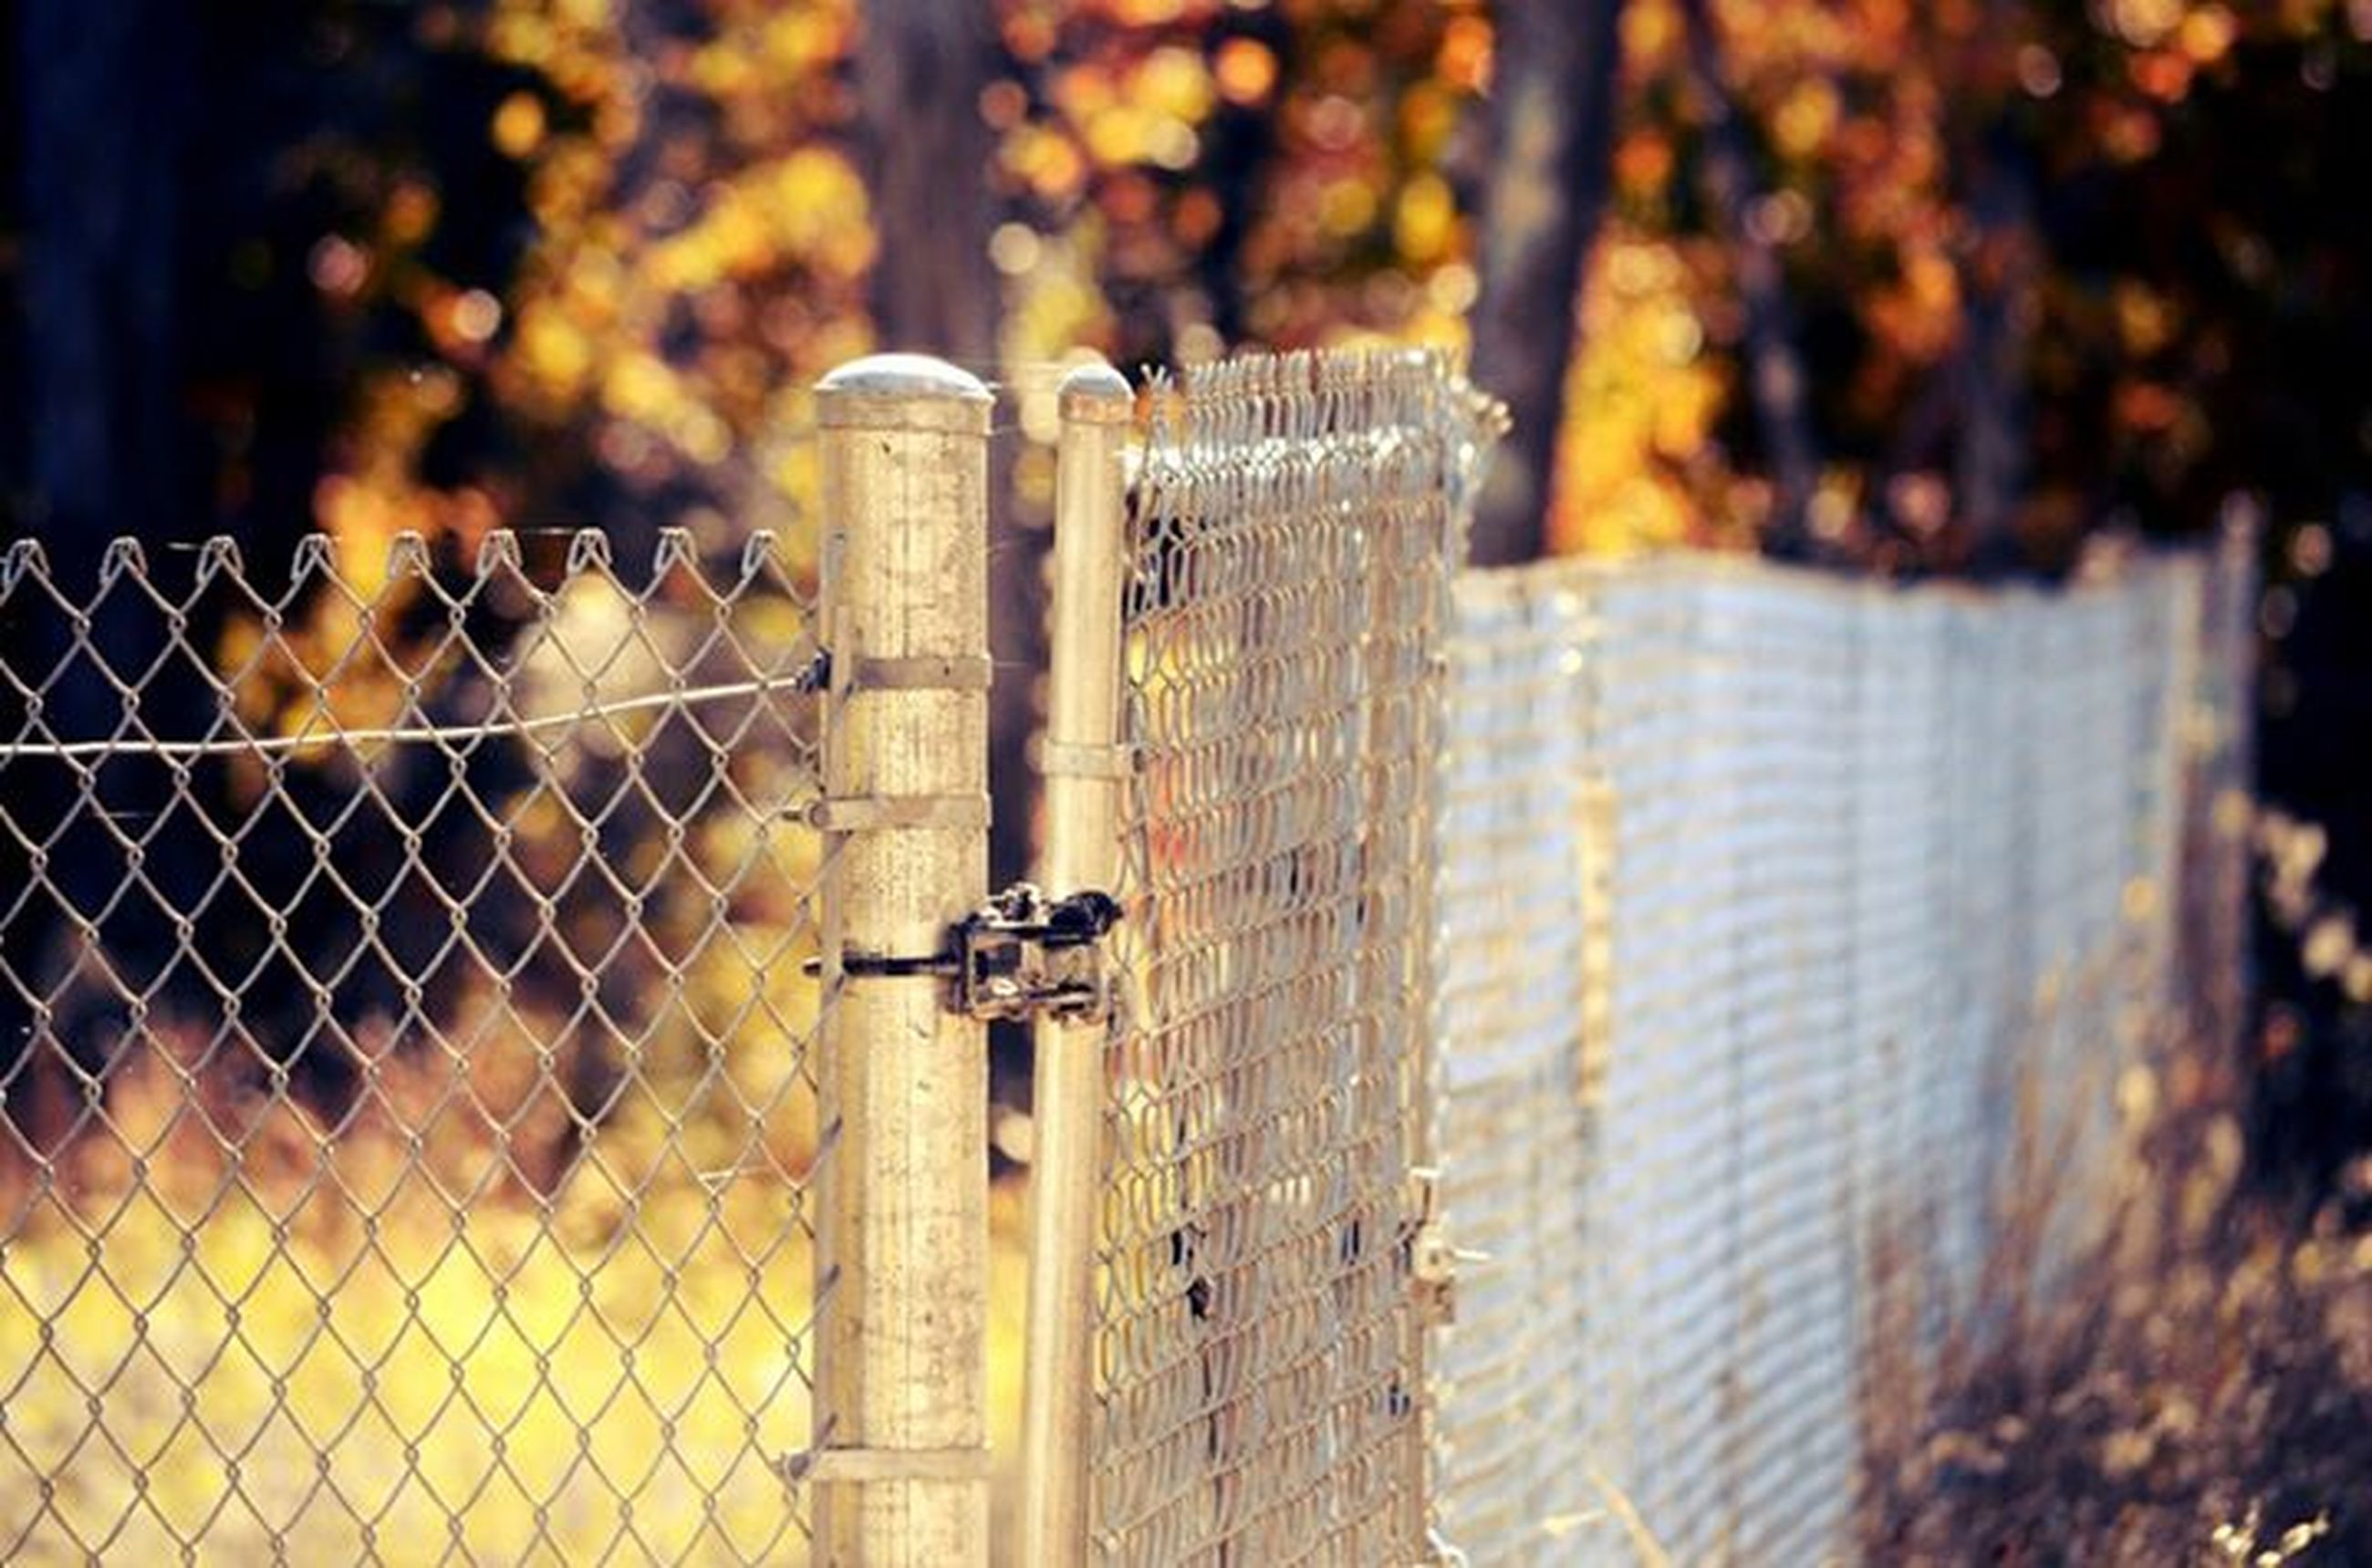 fence, safety, protection, chainlink fence, metal, security, focus on foreground, animal themes, metallic, outdoors, gate, day, selective focus, metal grate, no people, close-up, barbed wire, railing, chain, mammal